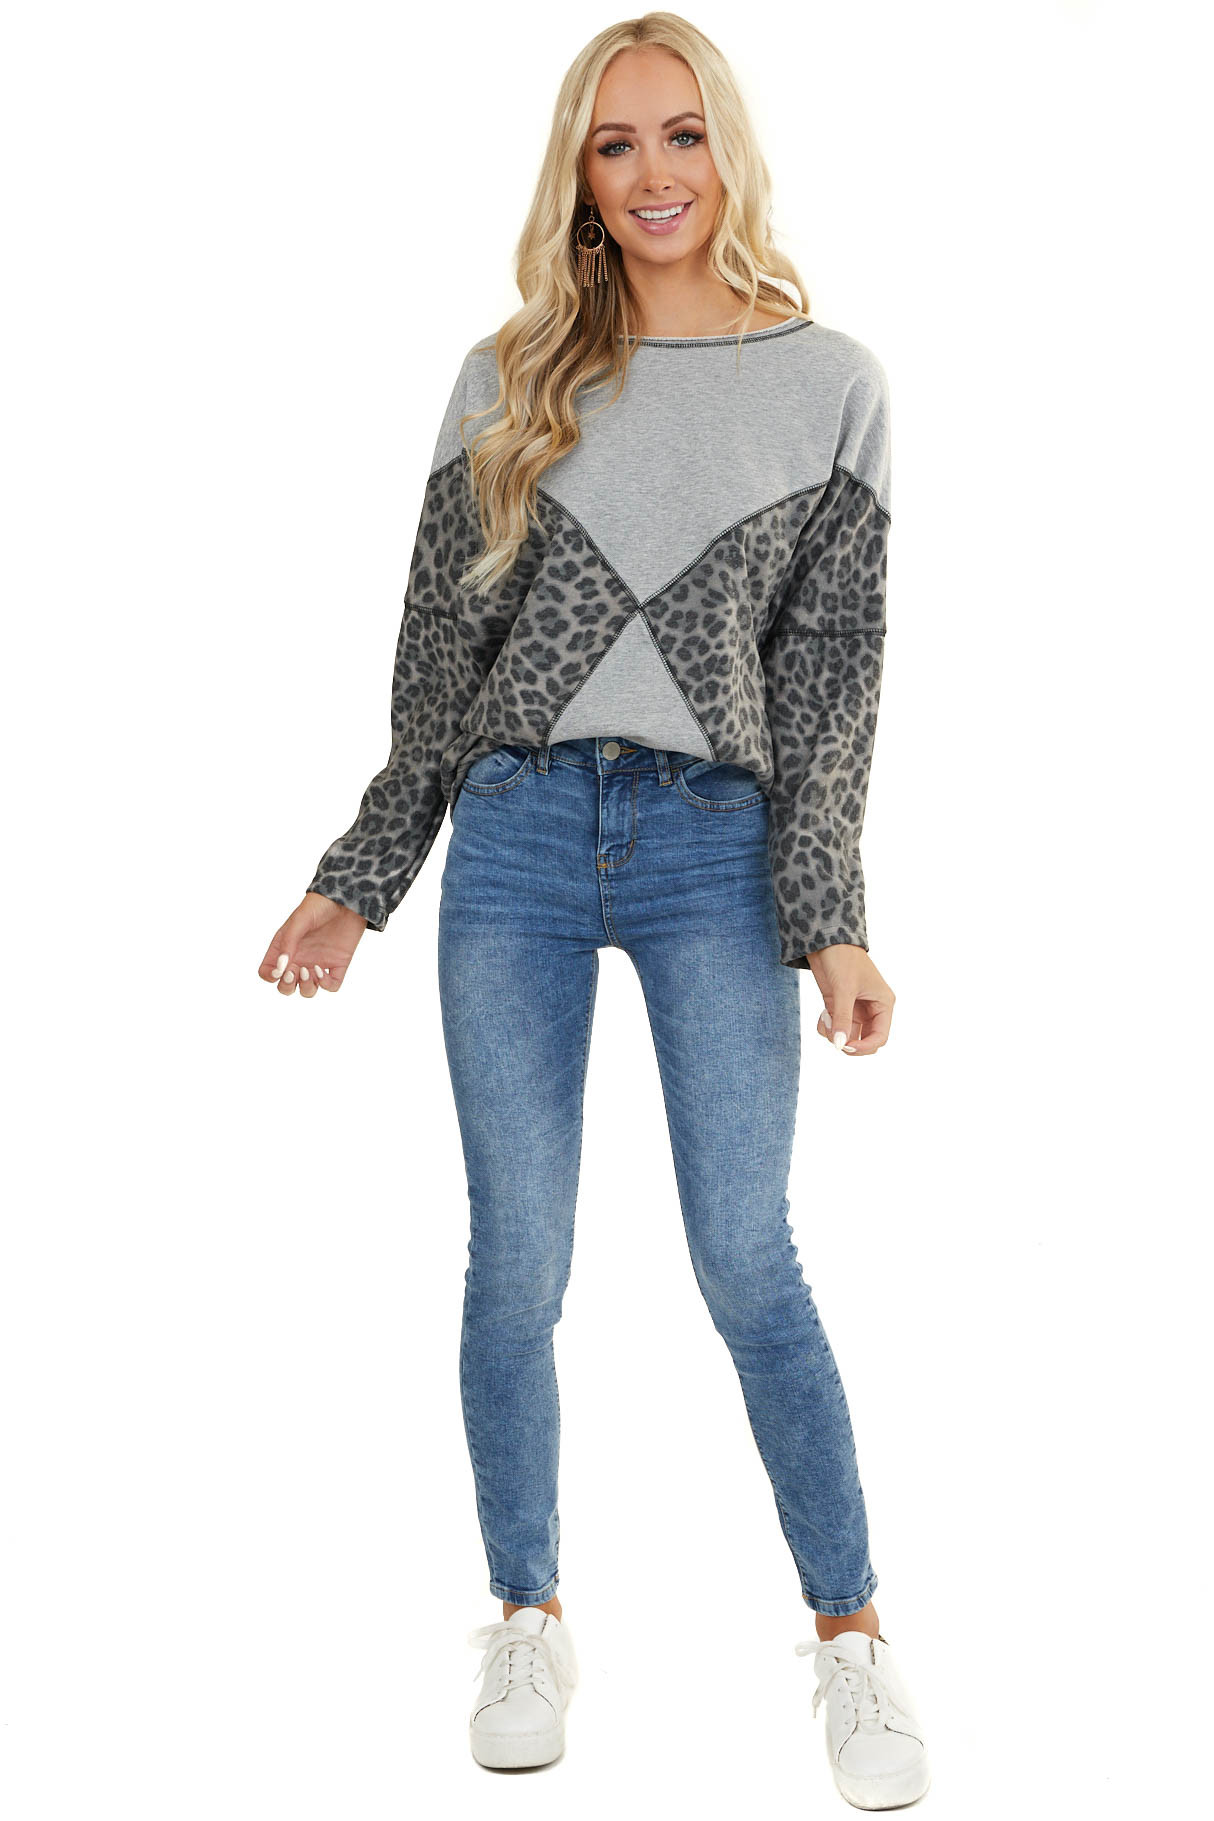 Heather Grey and Leopard Print Long Sleeve Sweater Top